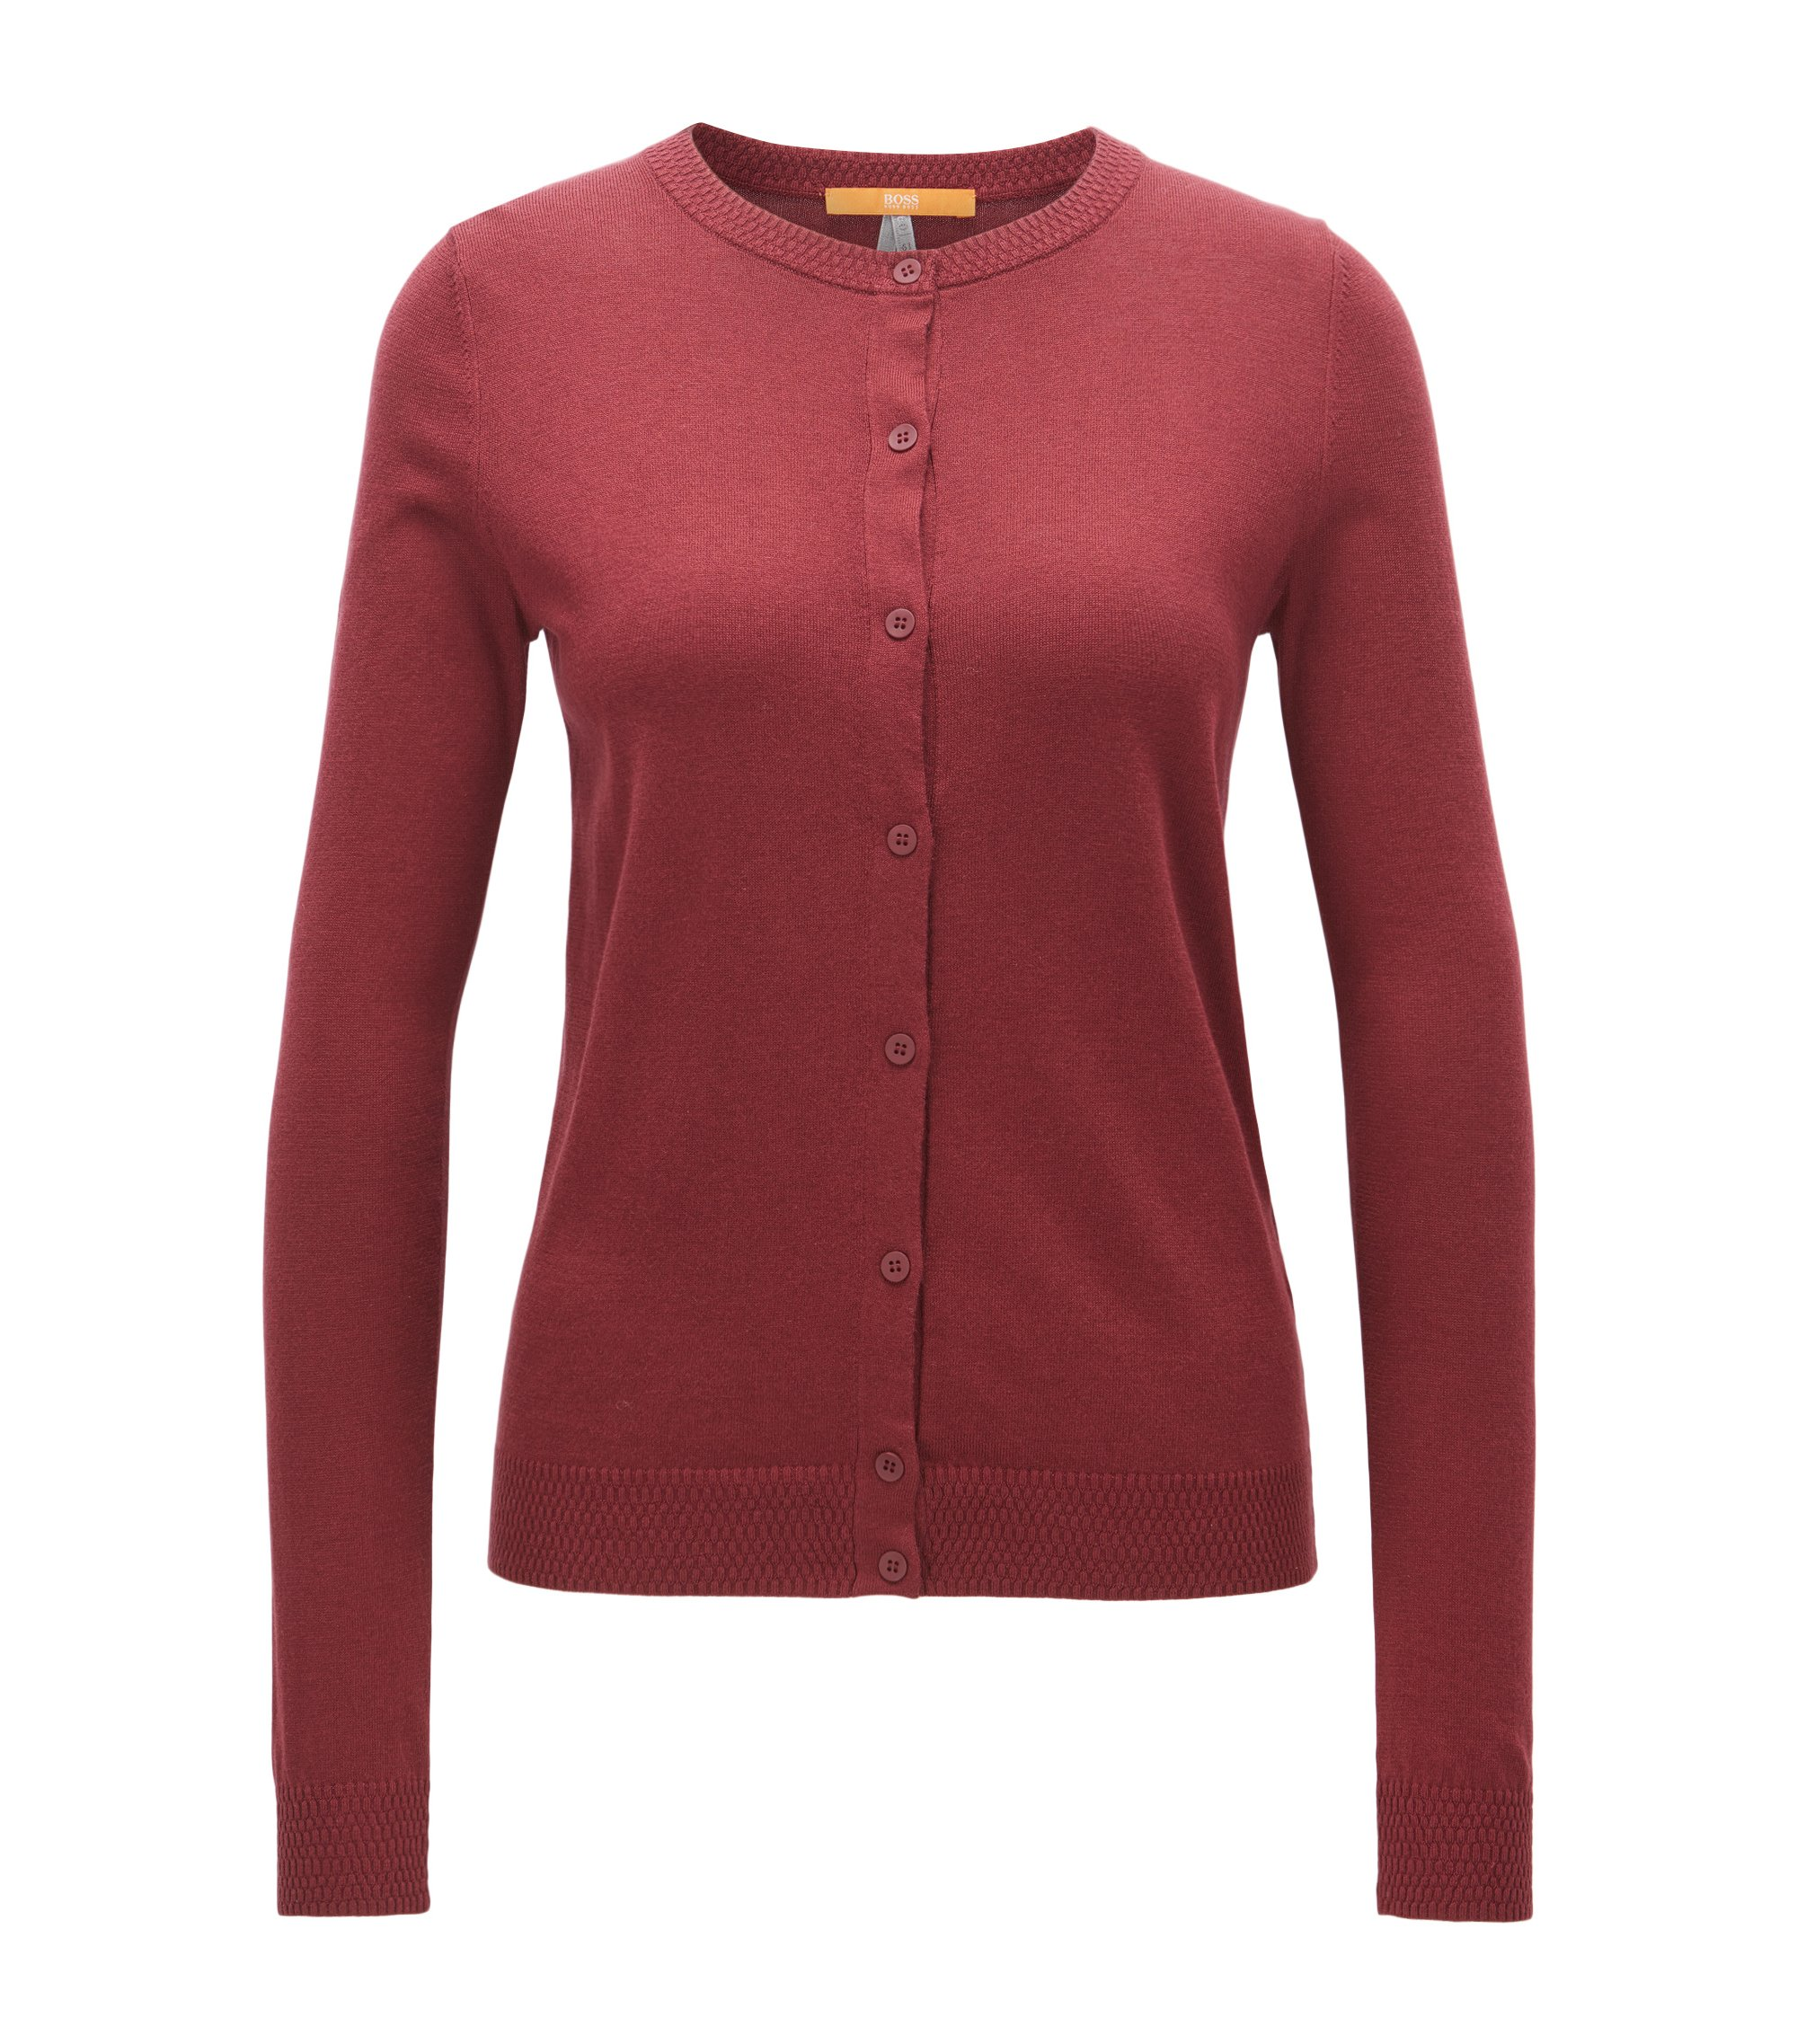 Cardigan Regular Fit en coton mélangé, Rouge sombre